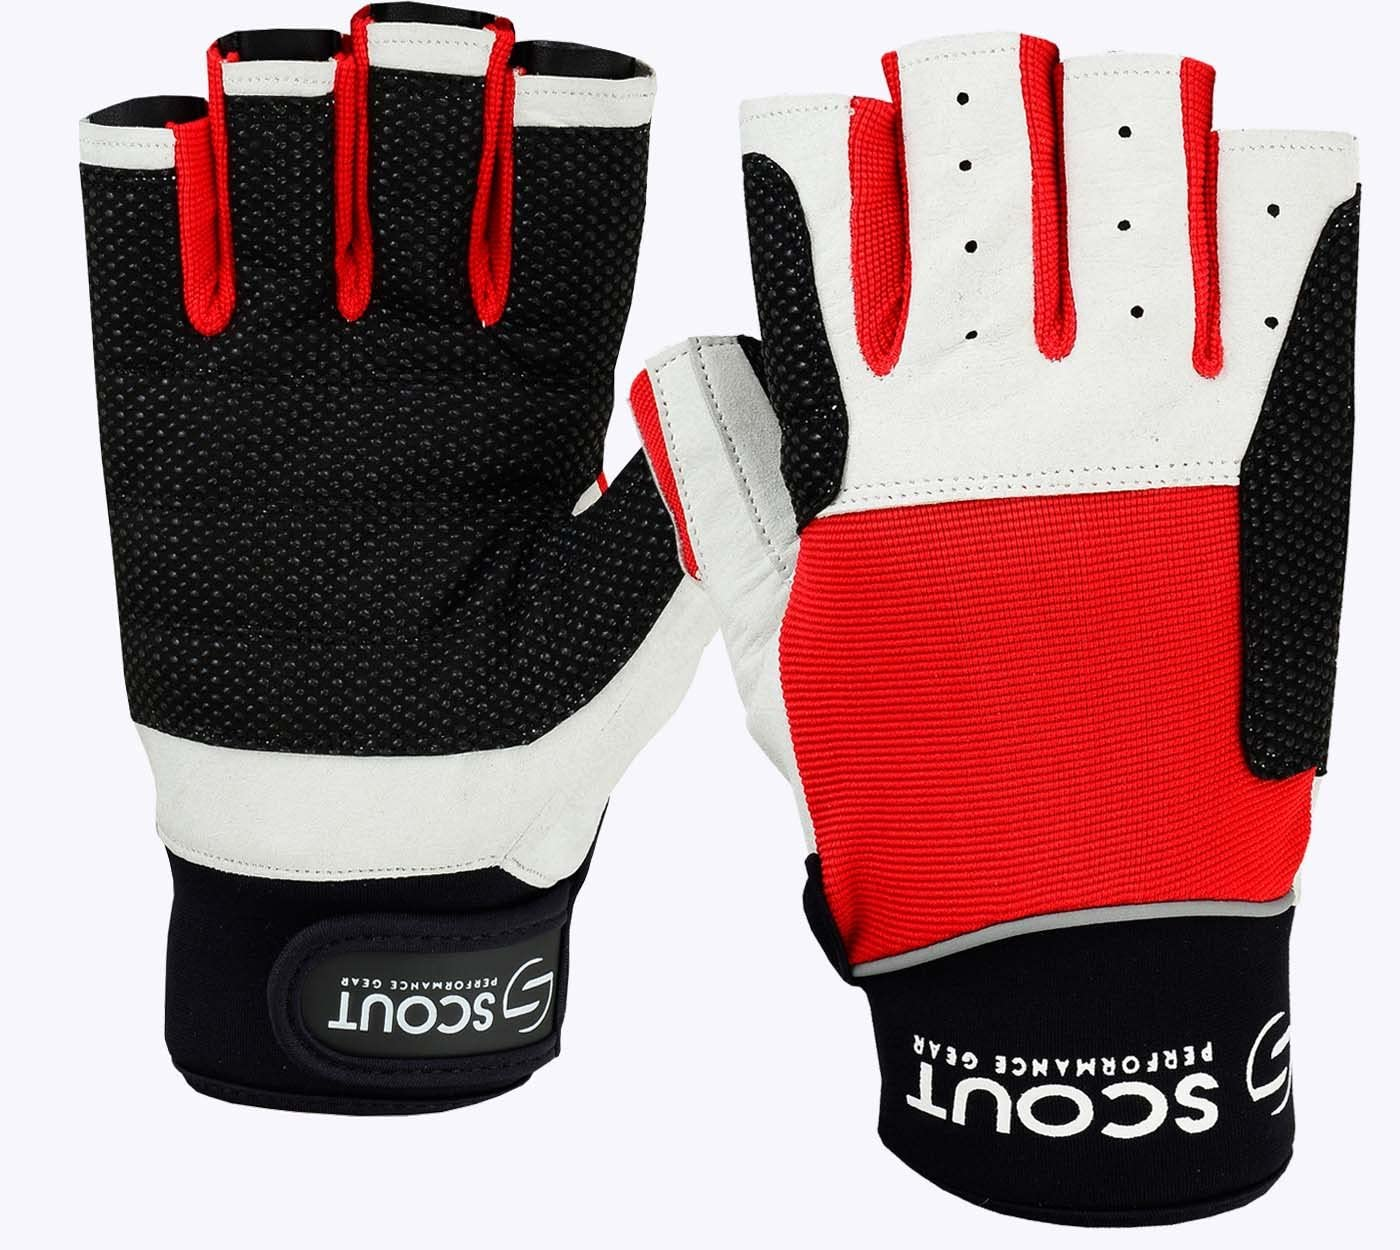 New Sailing Glove Short Finger Yachting Rope Fishing Kayak Dinghy Gloves BLK Red